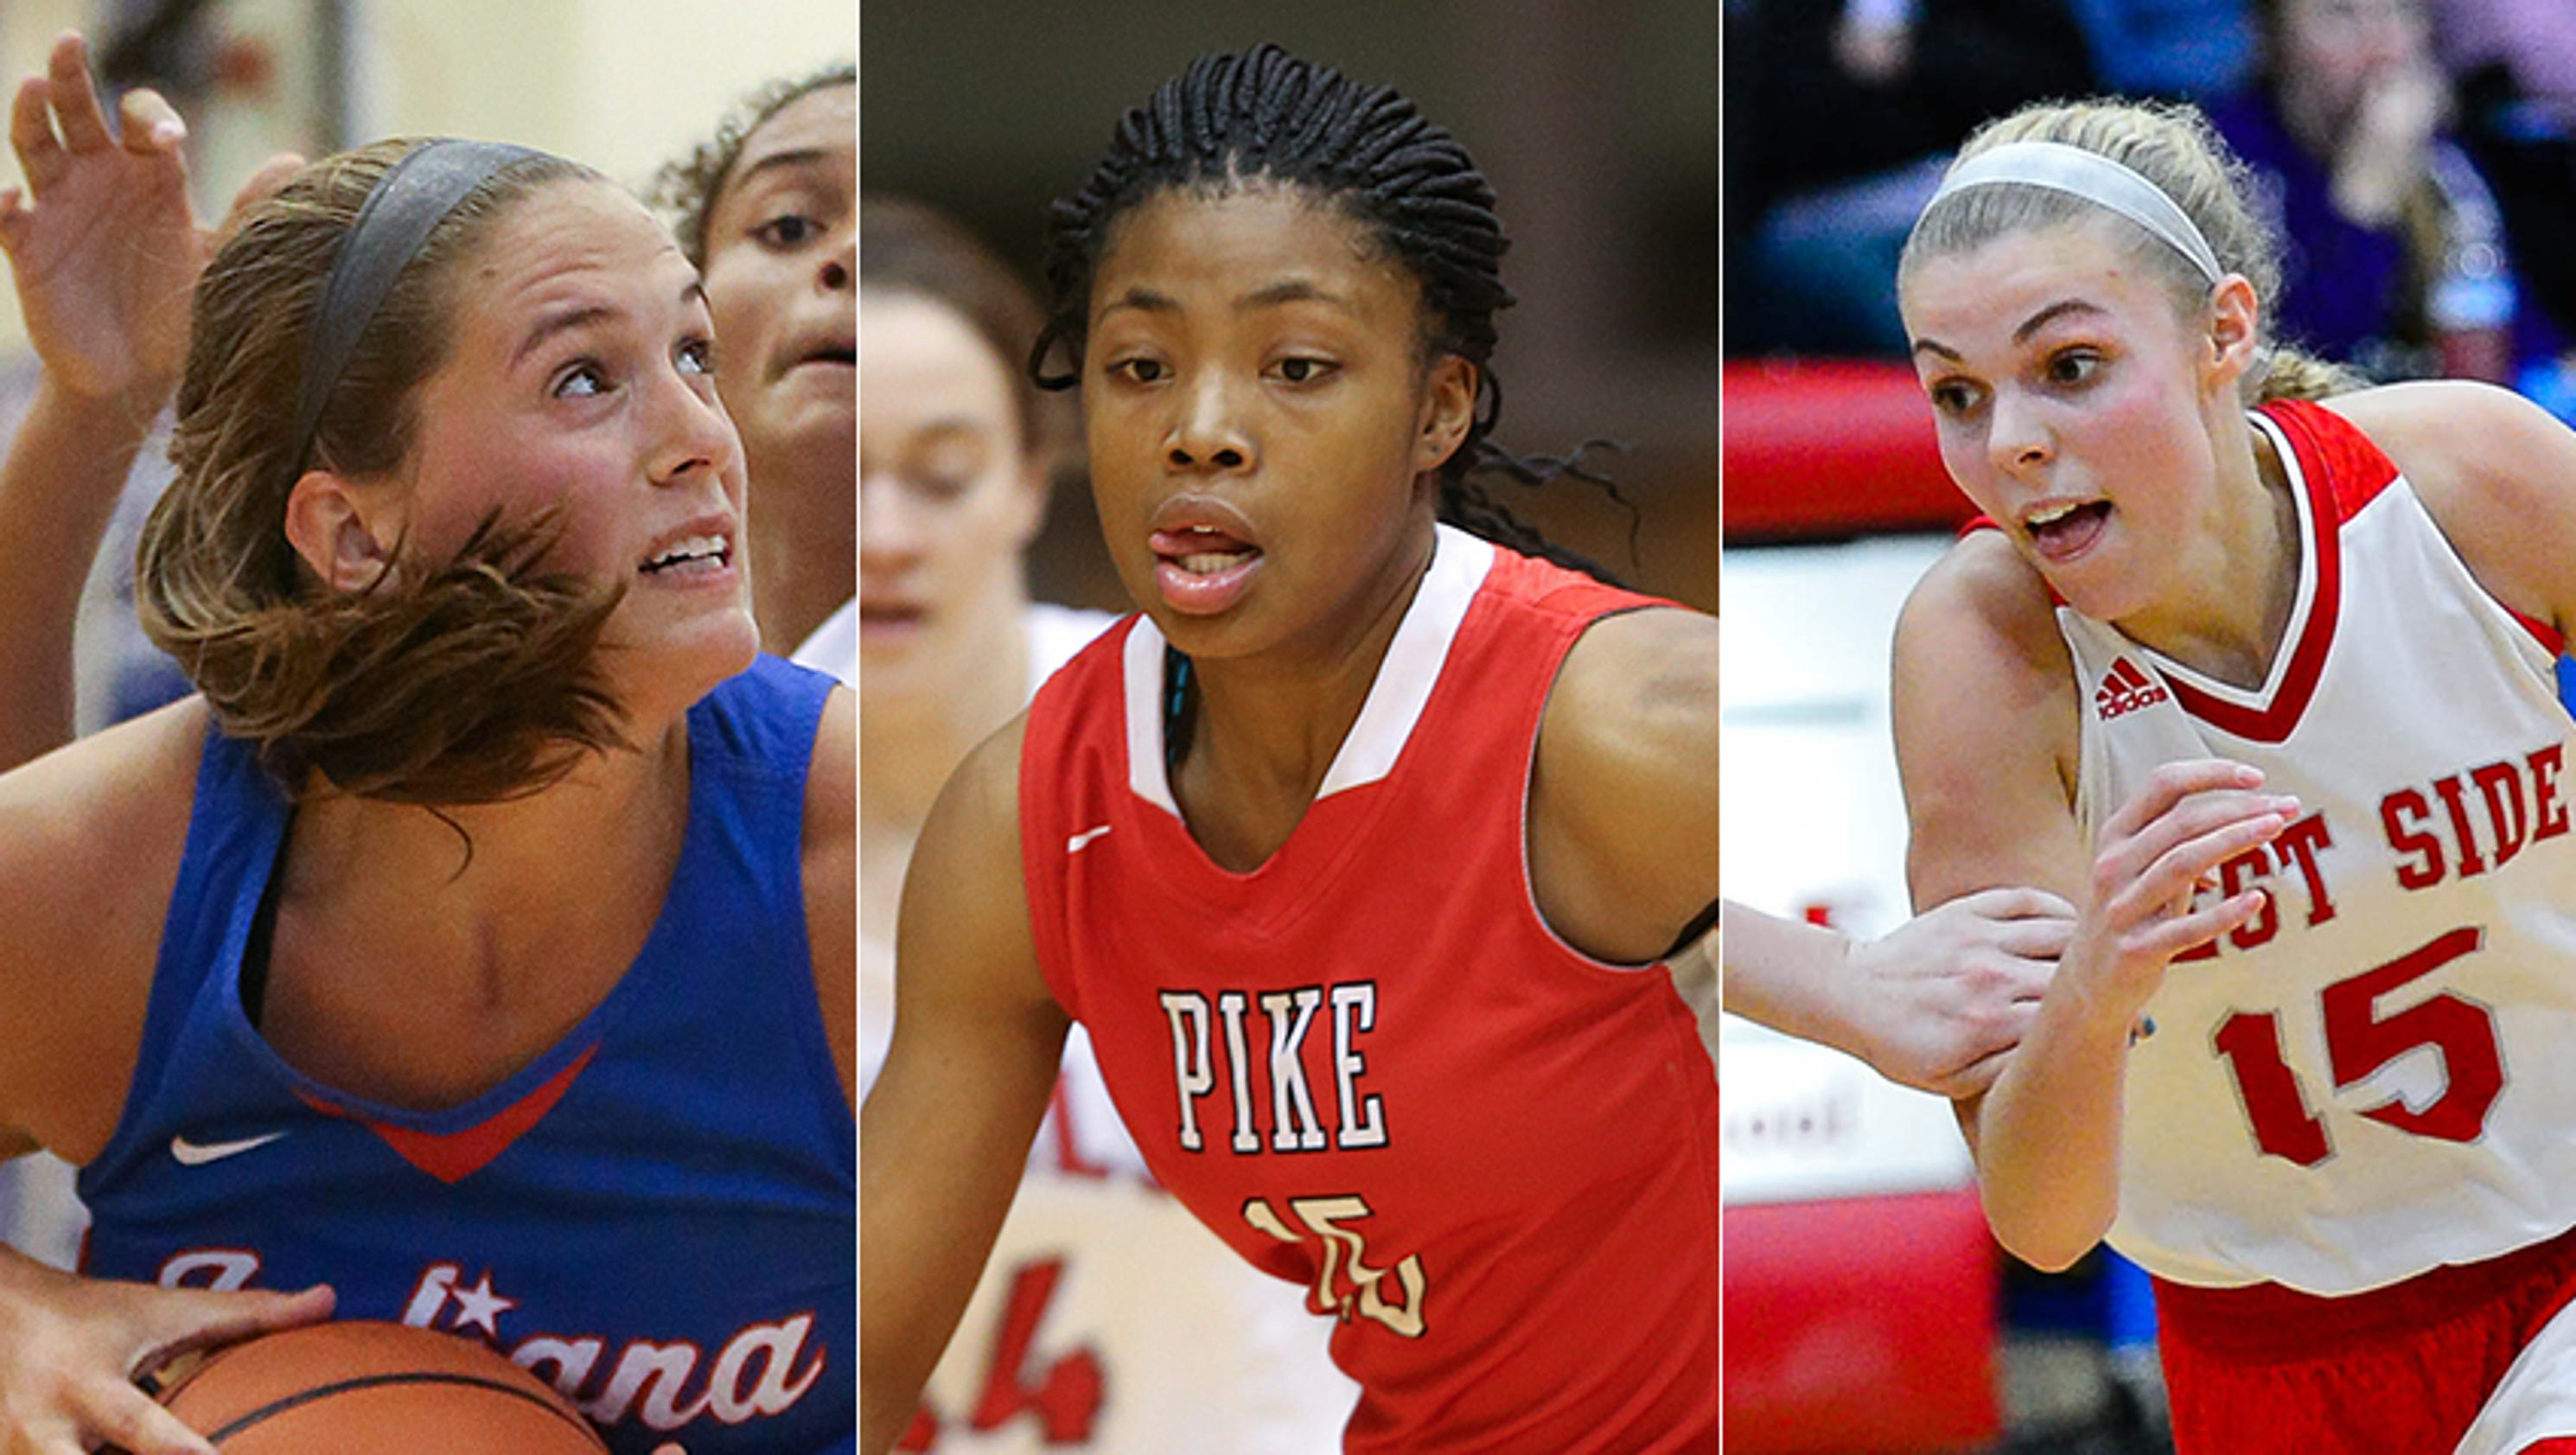 Indiana girls basketball: Class of 2018 standouts from first July evaluation period